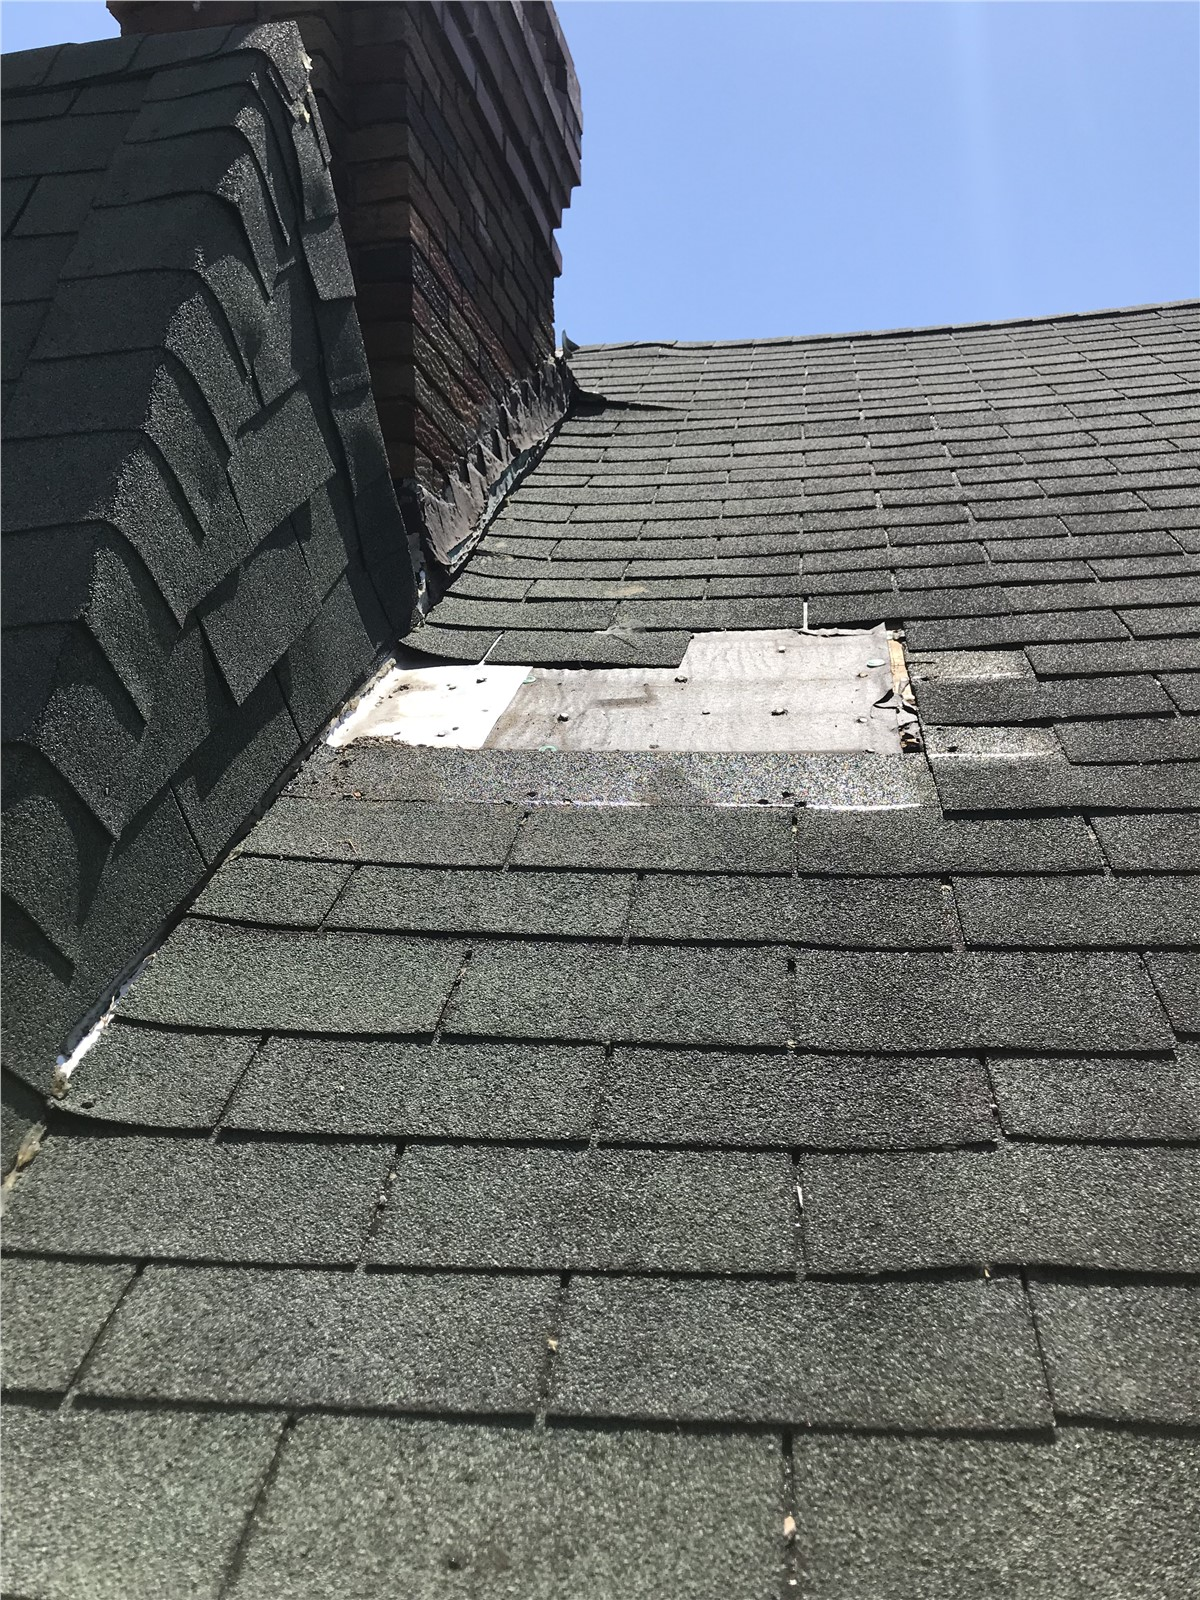 Roof Repair Replacement Company In Gibsonia Free Roof Inspection Quote Insurance Filing Or Financing Options Available